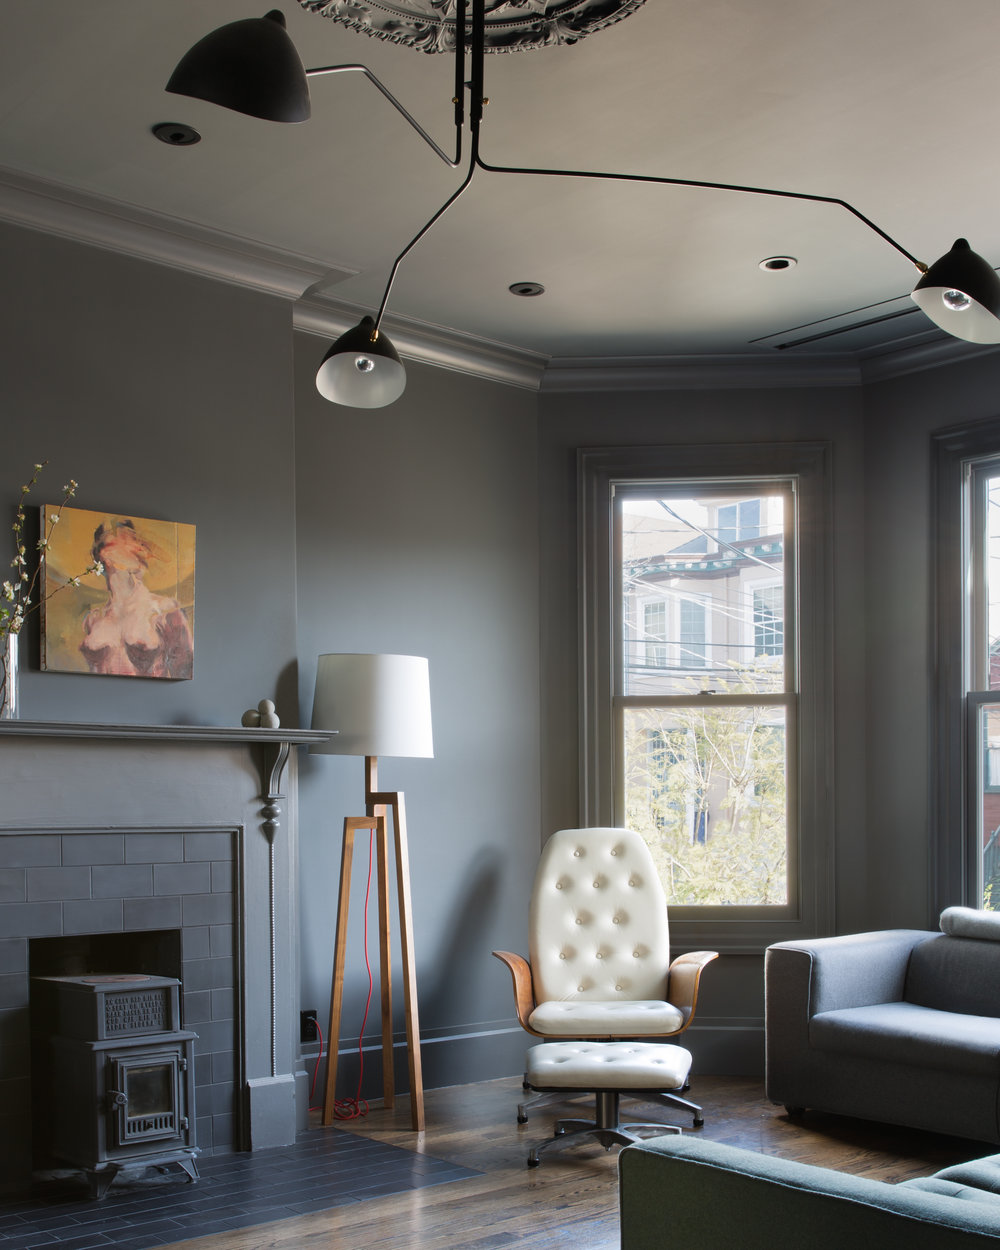 living area with black walls and ceiling and black light fixtures and grey and white furniture.jpg